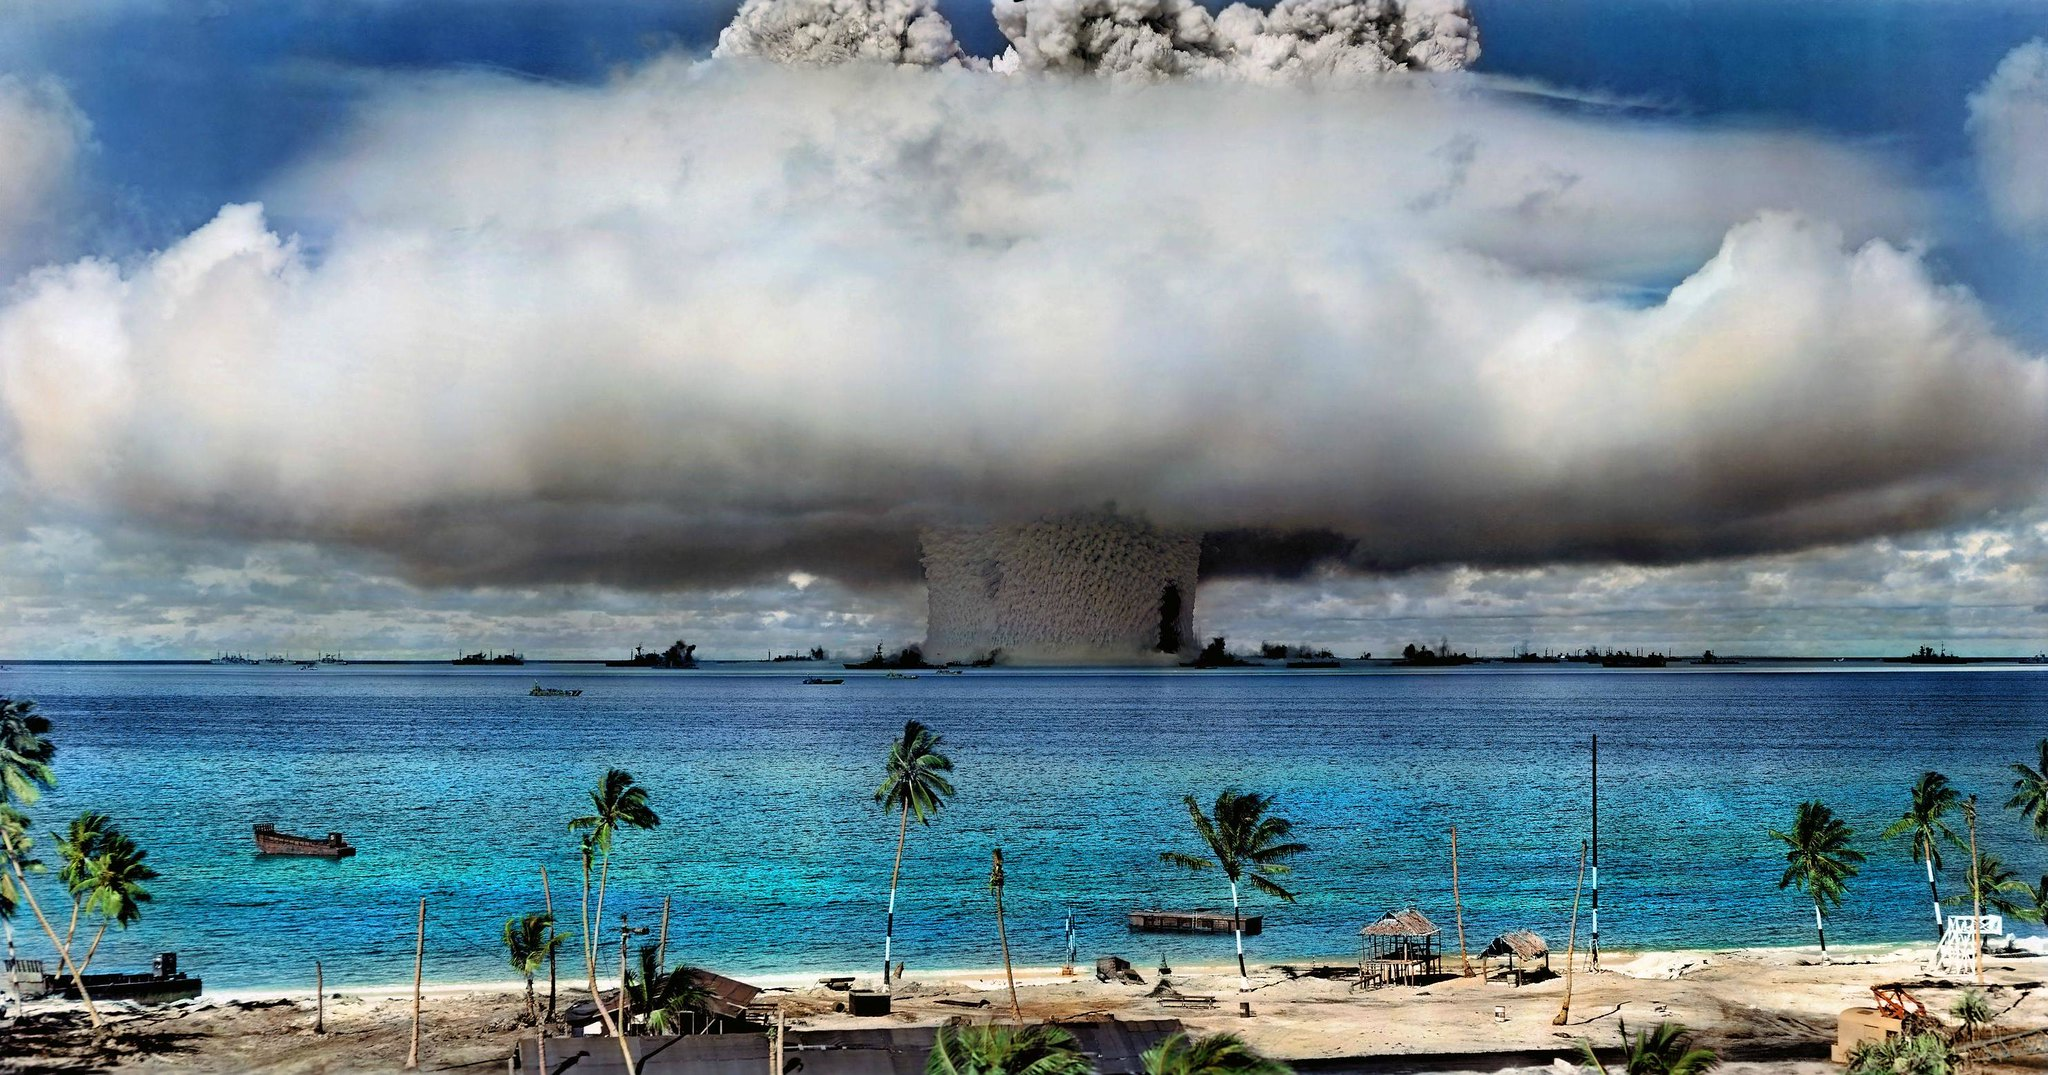 nuclear test 核試爆(圖/International Campaign to Abolish Nuclear Weapons/CC BY-NC 2.0)